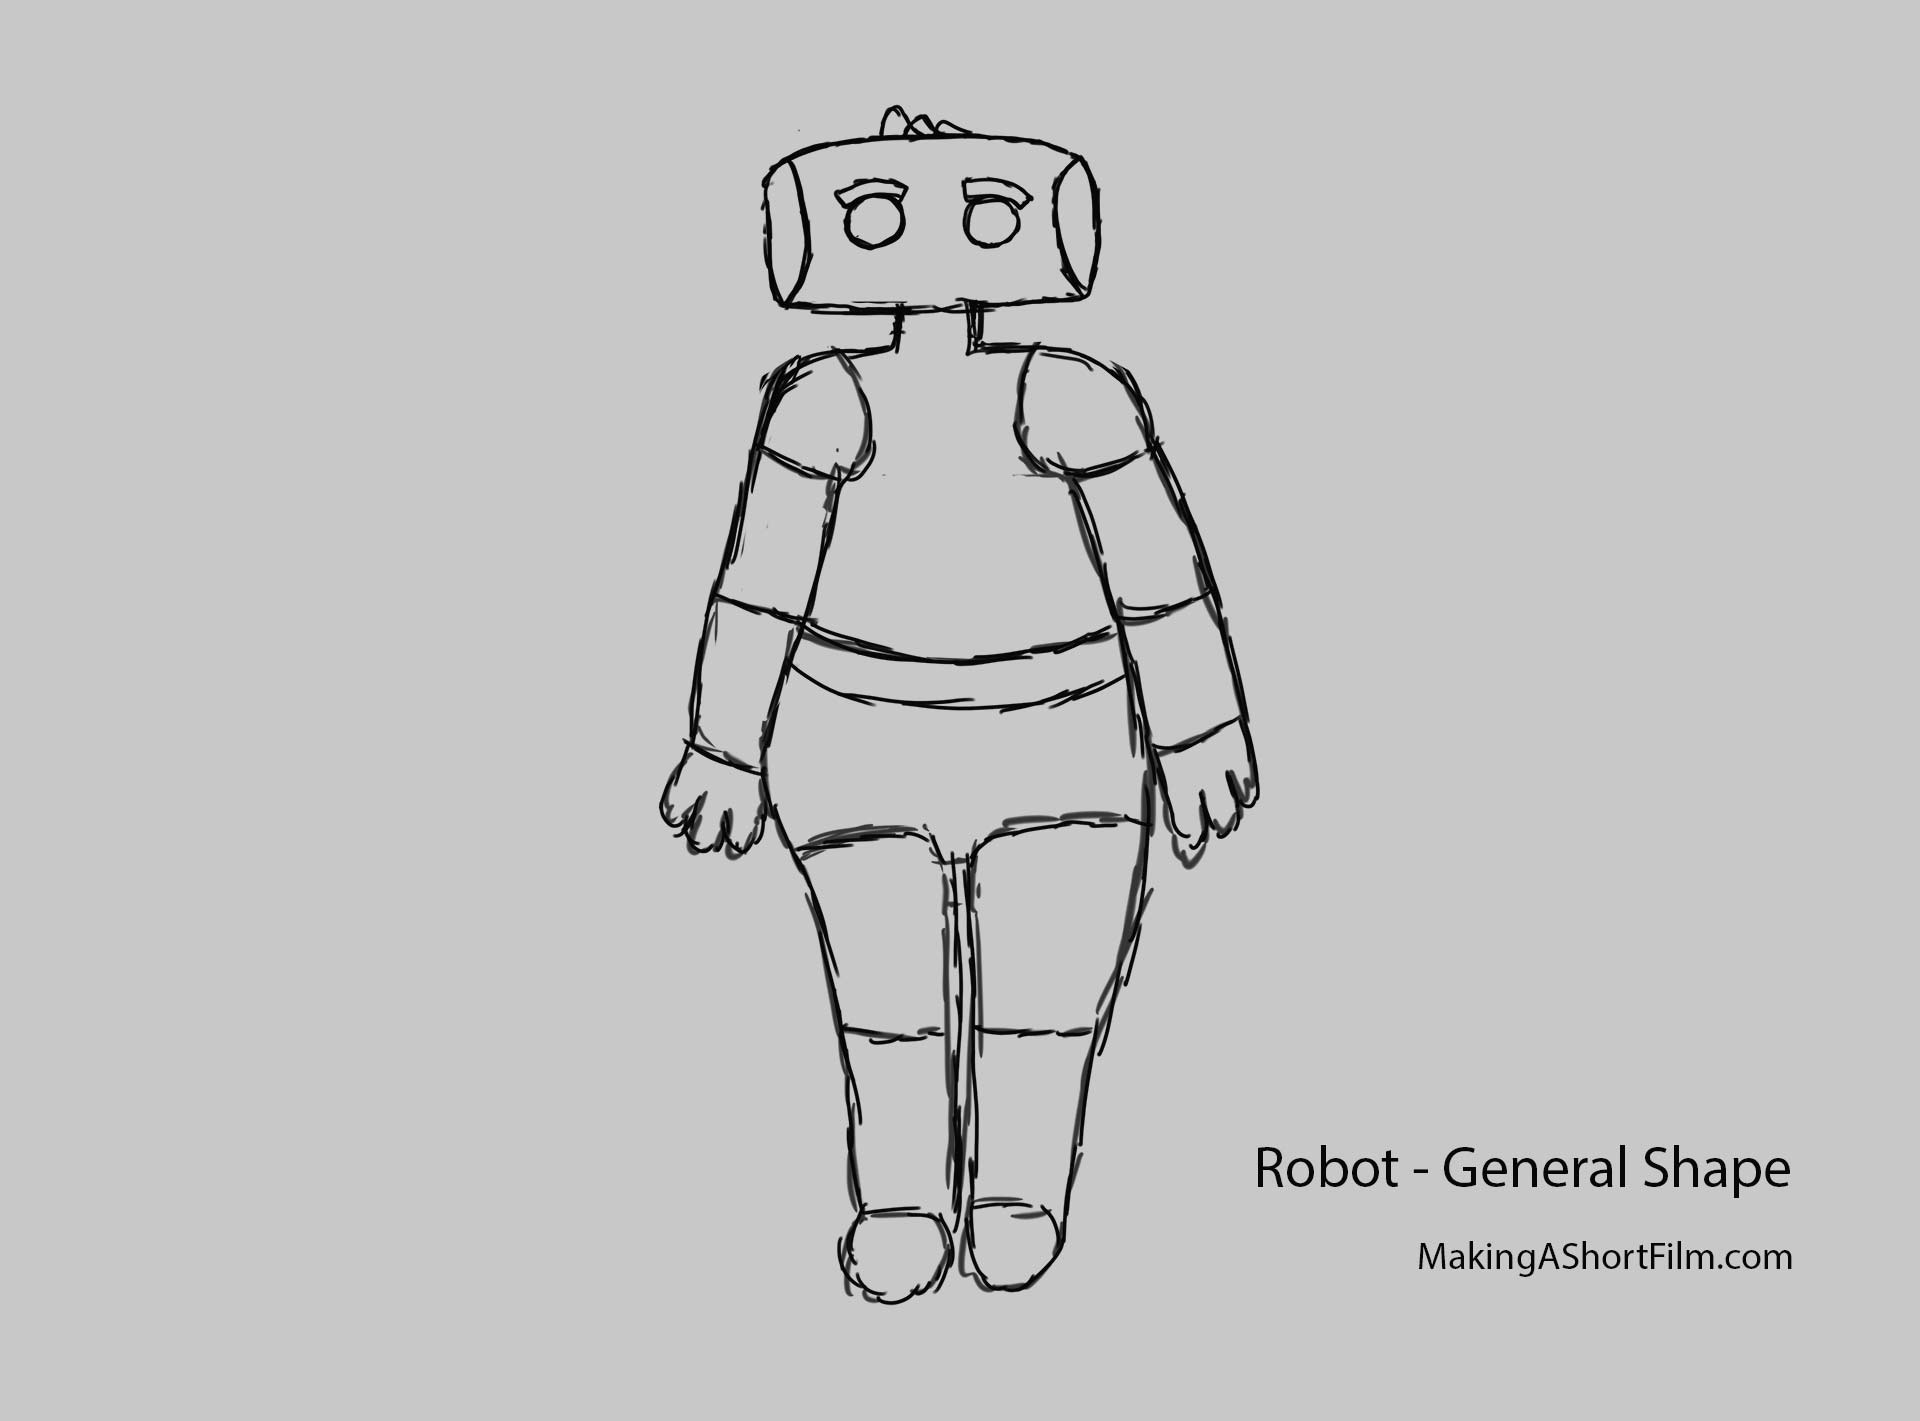 The General Body Shape of the Robot